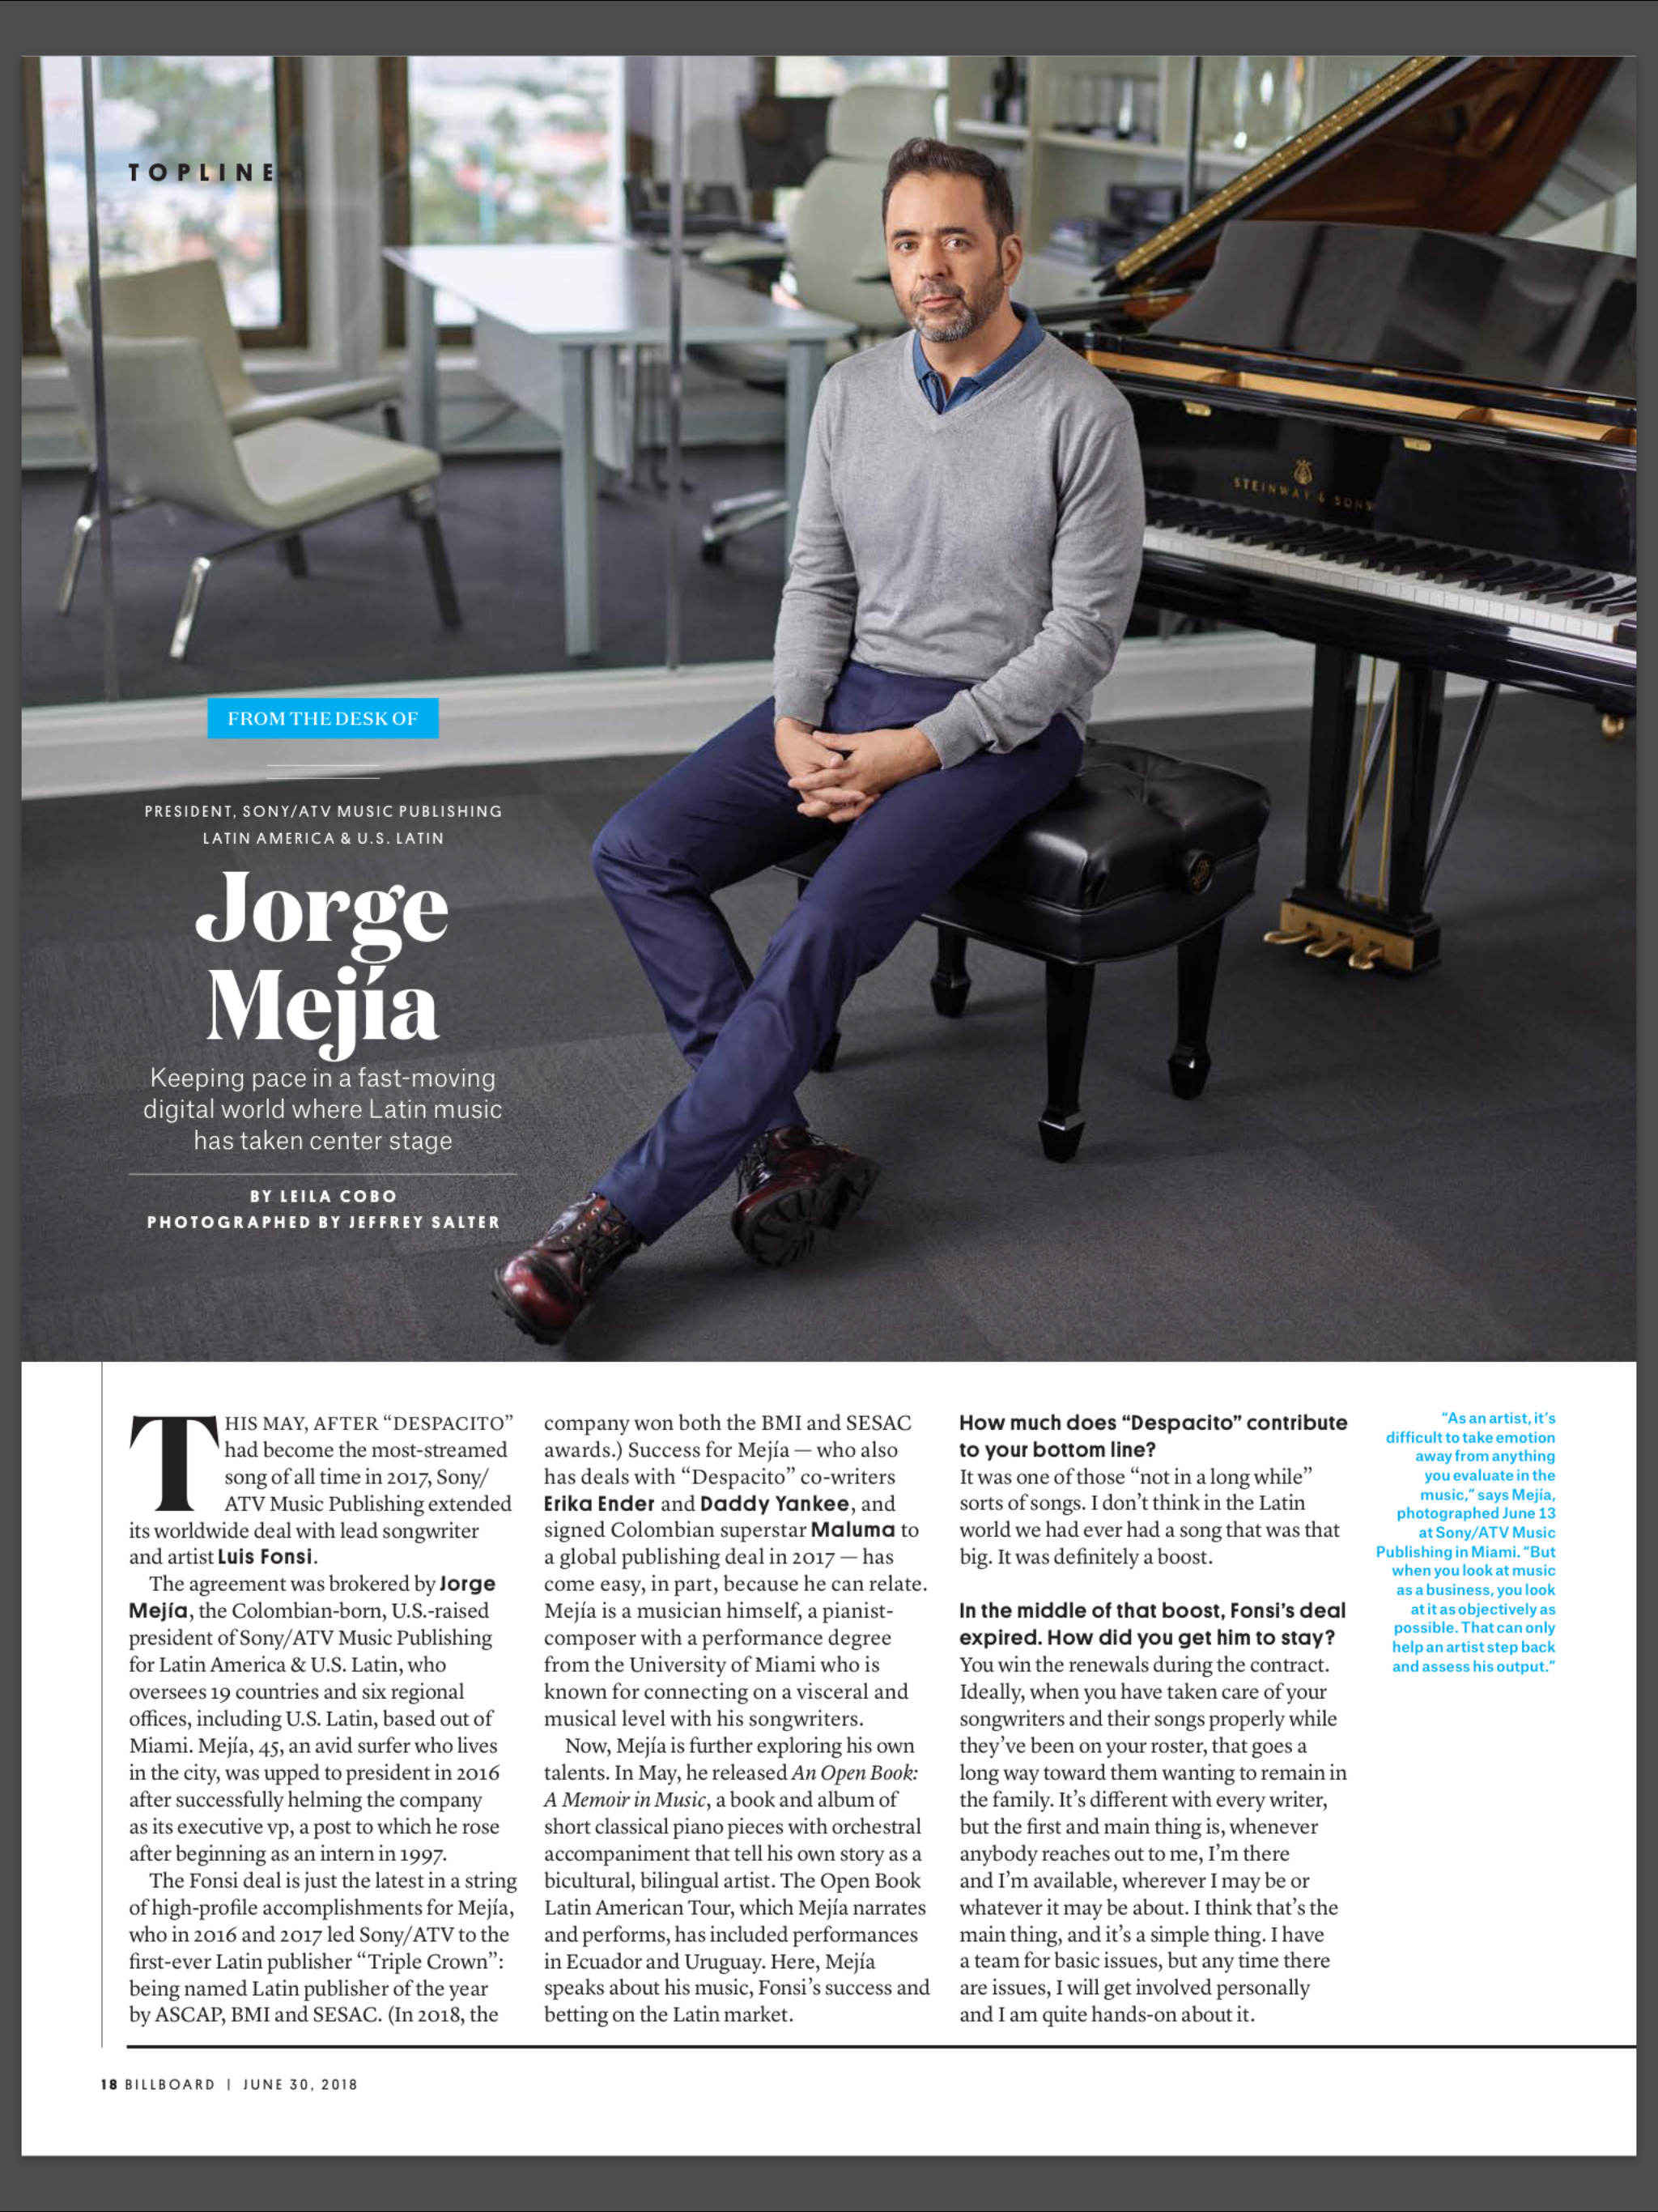 Jorge Mejia - Billboard June 29 2018 Page 1.jpg